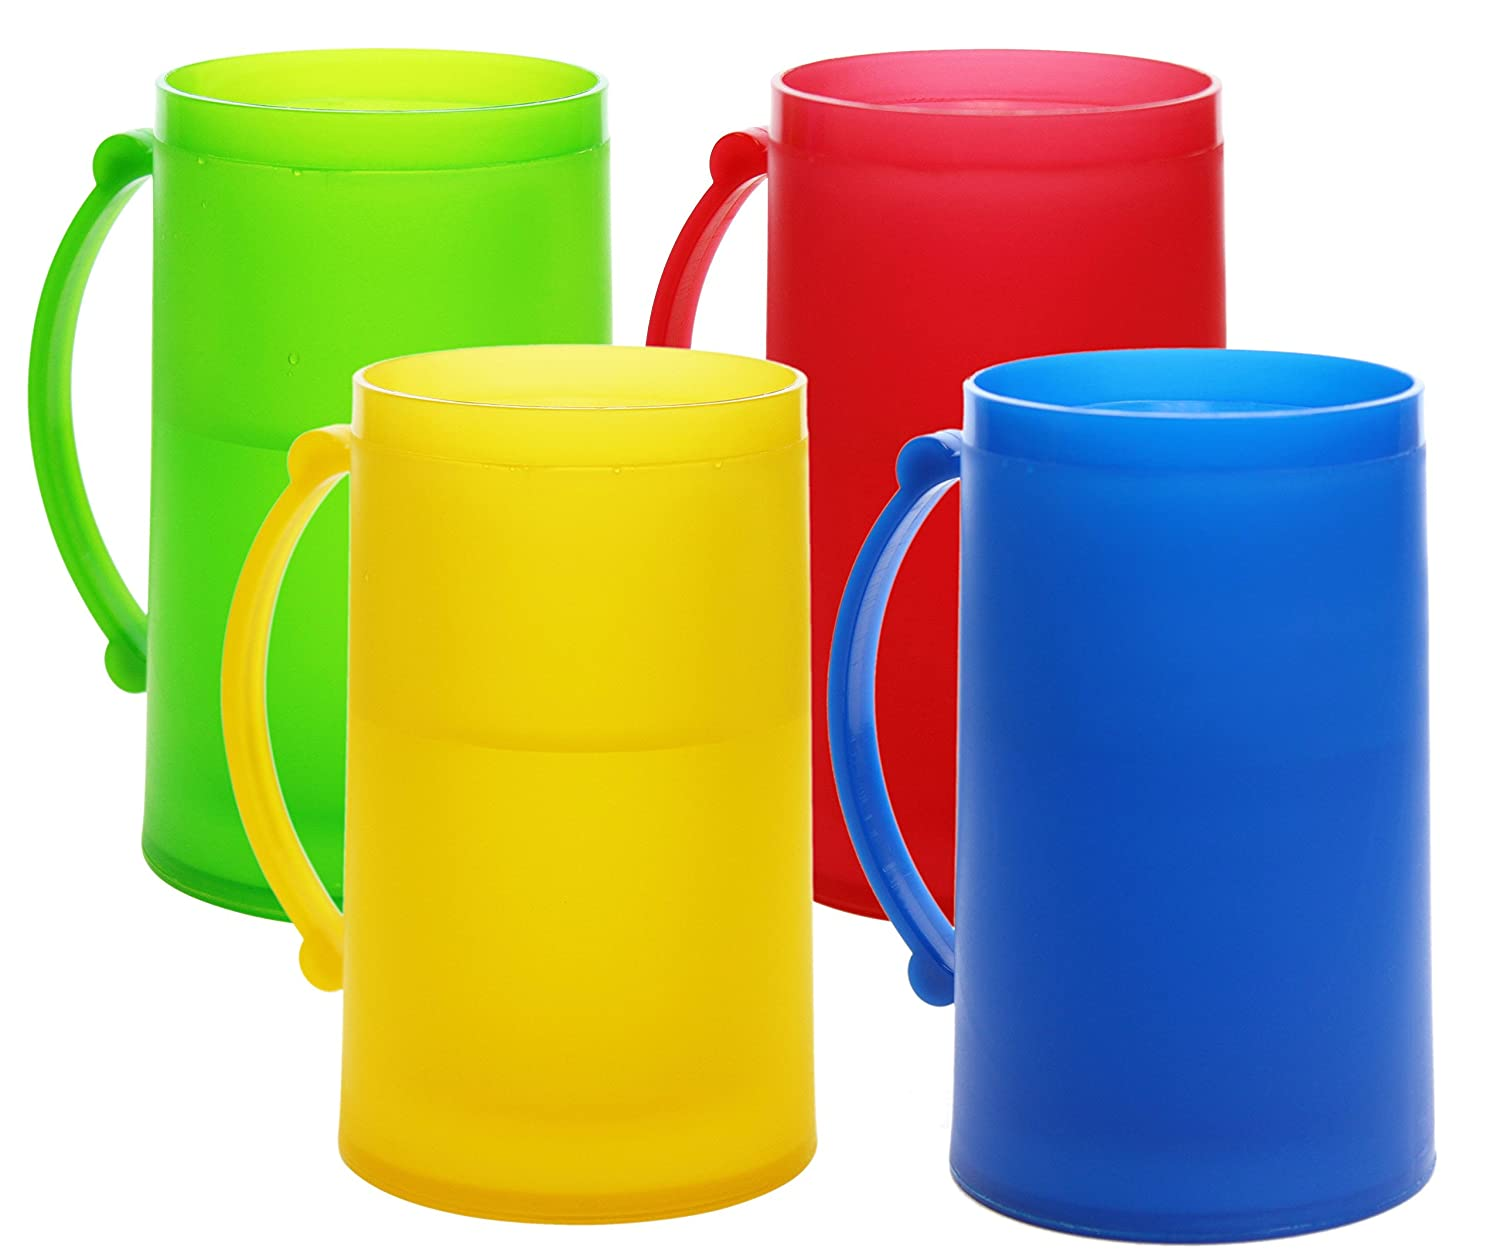 3 Best Beer Mugs for the Freezer - (2018 Updated Guide)